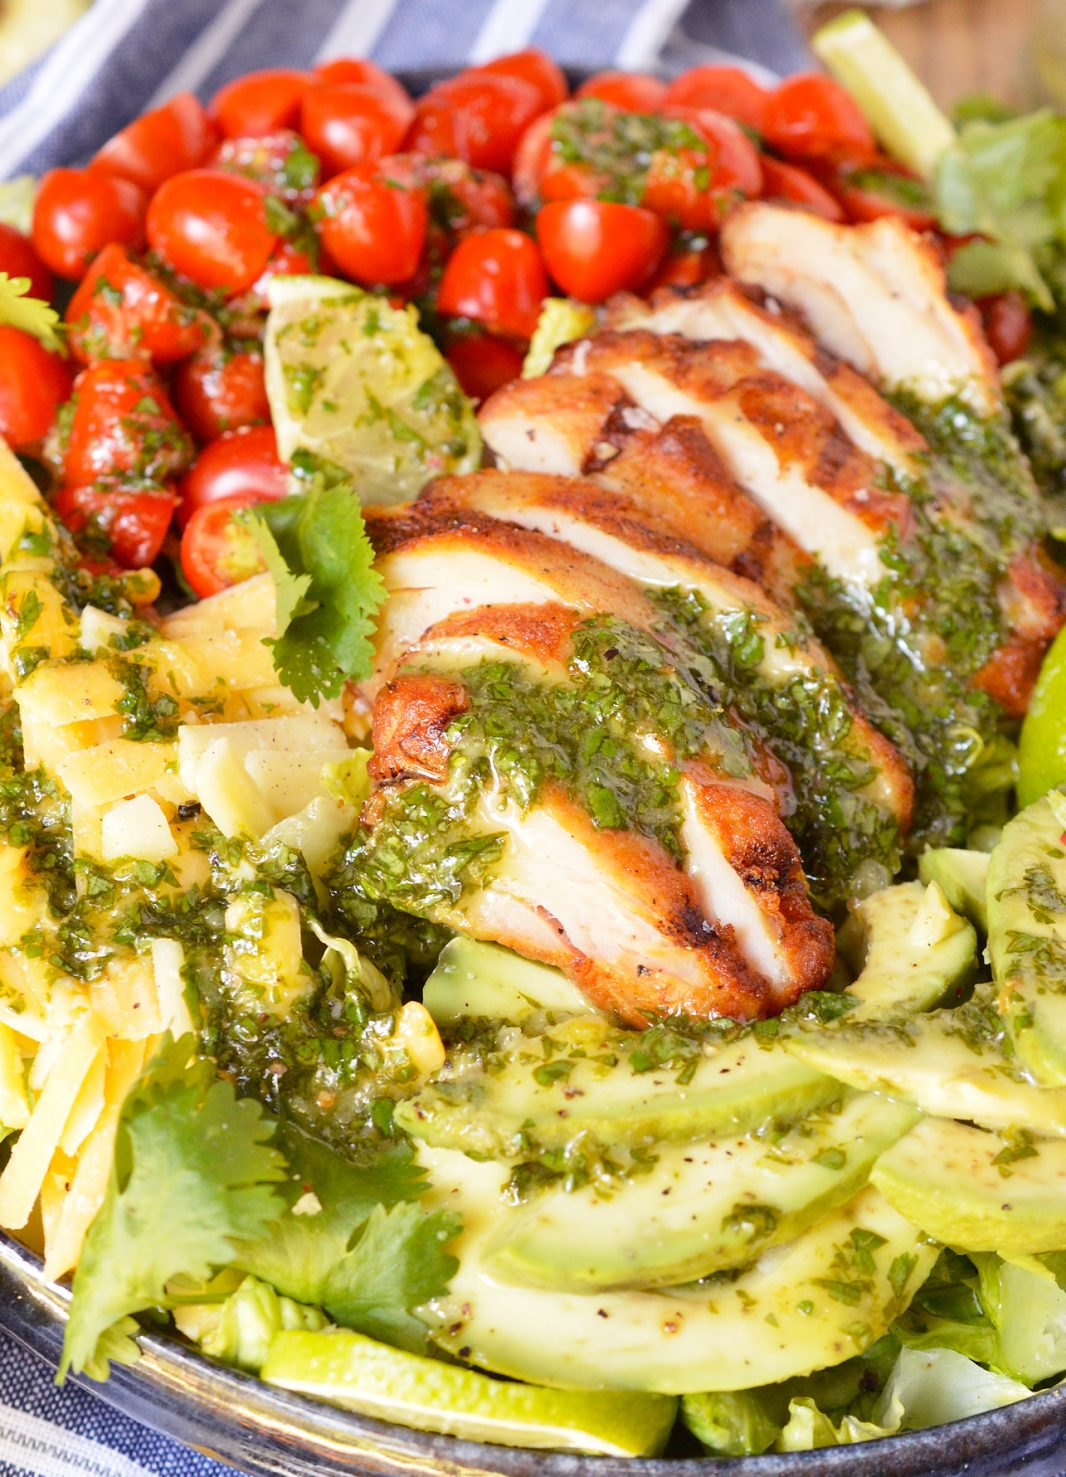 For a quick, fresh, easy and nutritious meal look no further than thisGrilled Chicken Salad with Cilantro Lime Dressing. Romaine lettuce topped with tomatoes, avocado, cheese, grilled chicken and cilantro lime vinaigrette... this is an easy dinner recipe that you can feel good about!